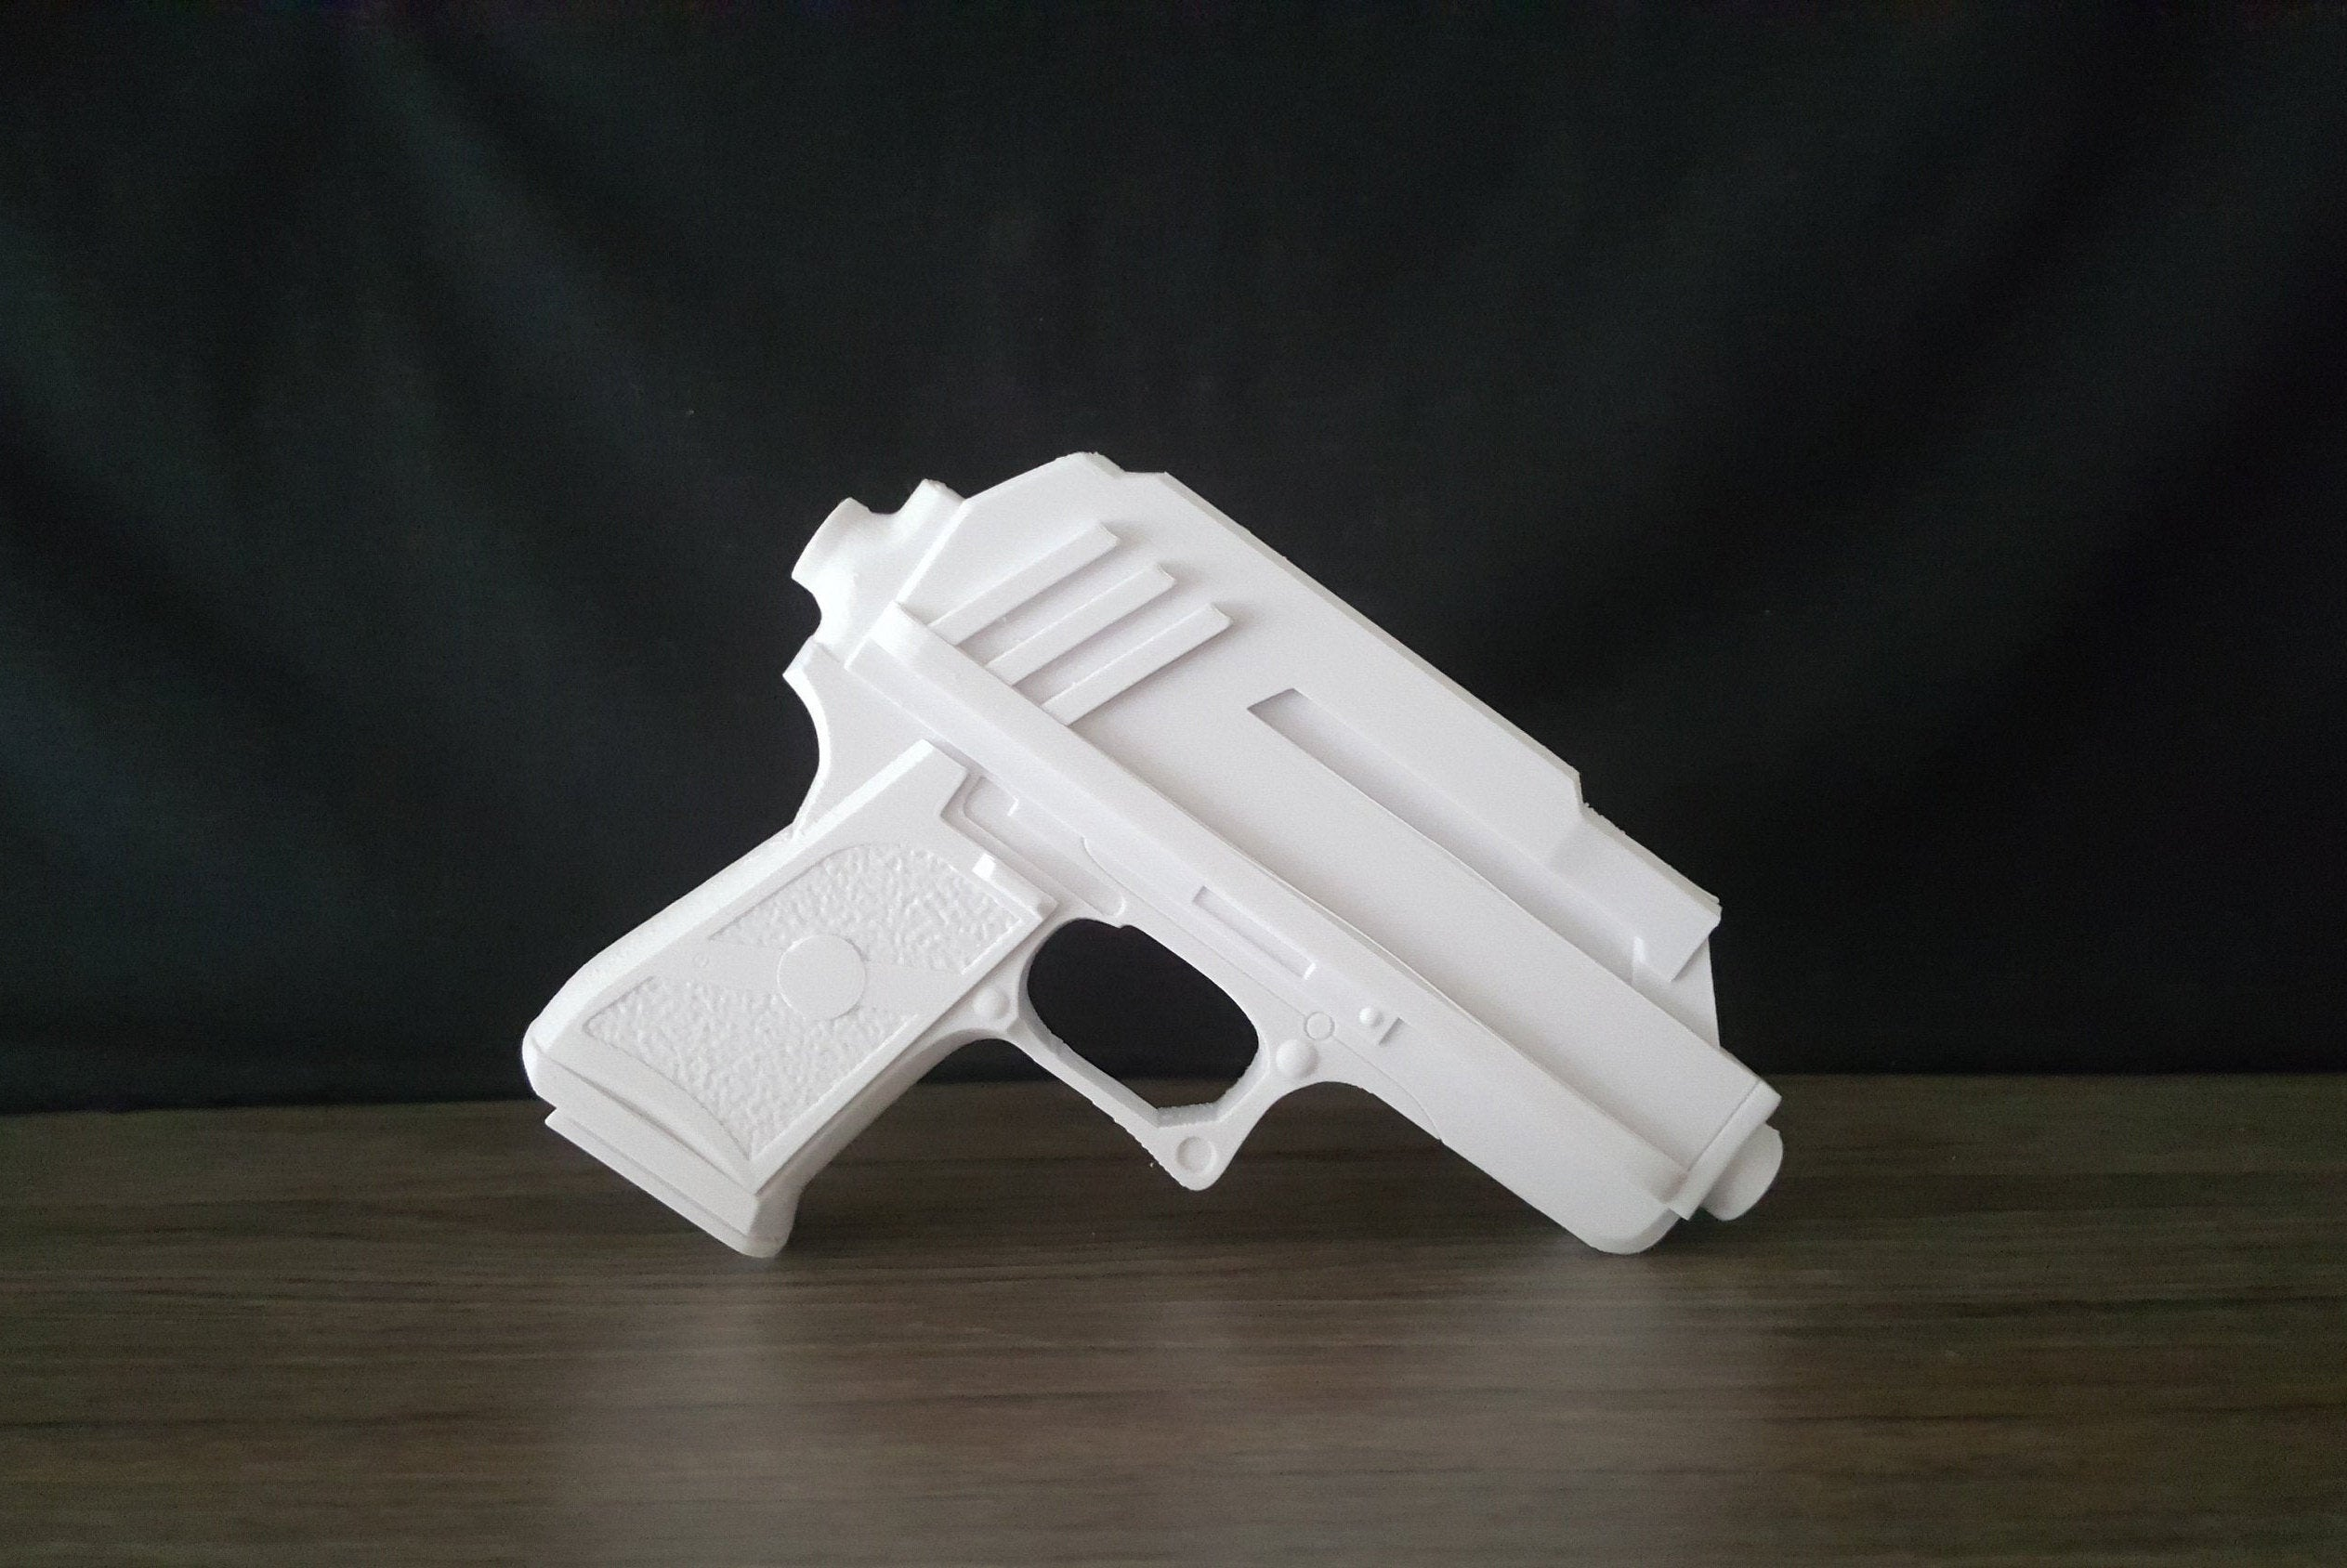 DC-17 Blaster Pistol - Realistic - DIY - The Galactic Armory